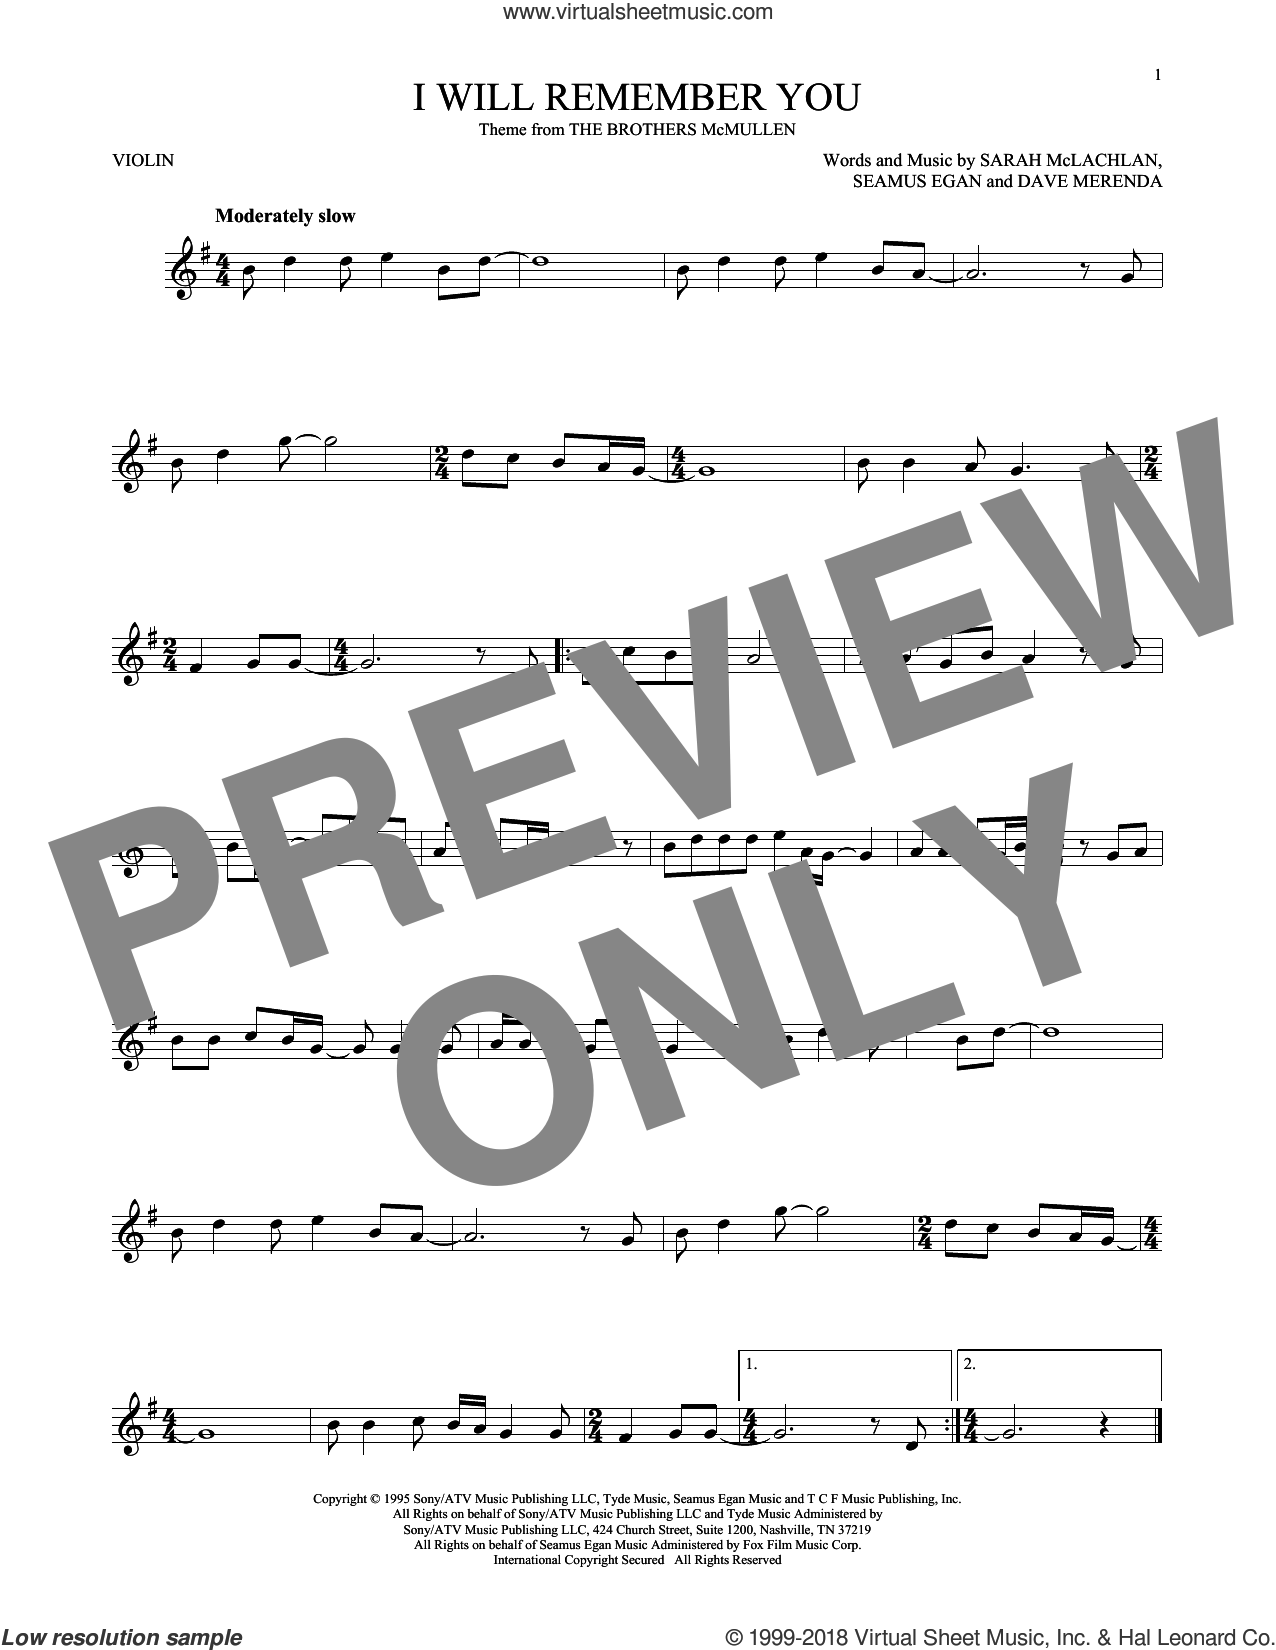 I Will Remember You sheet music for violin solo by Seamus Egan and Sarah McLachlan. Score Image Preview.